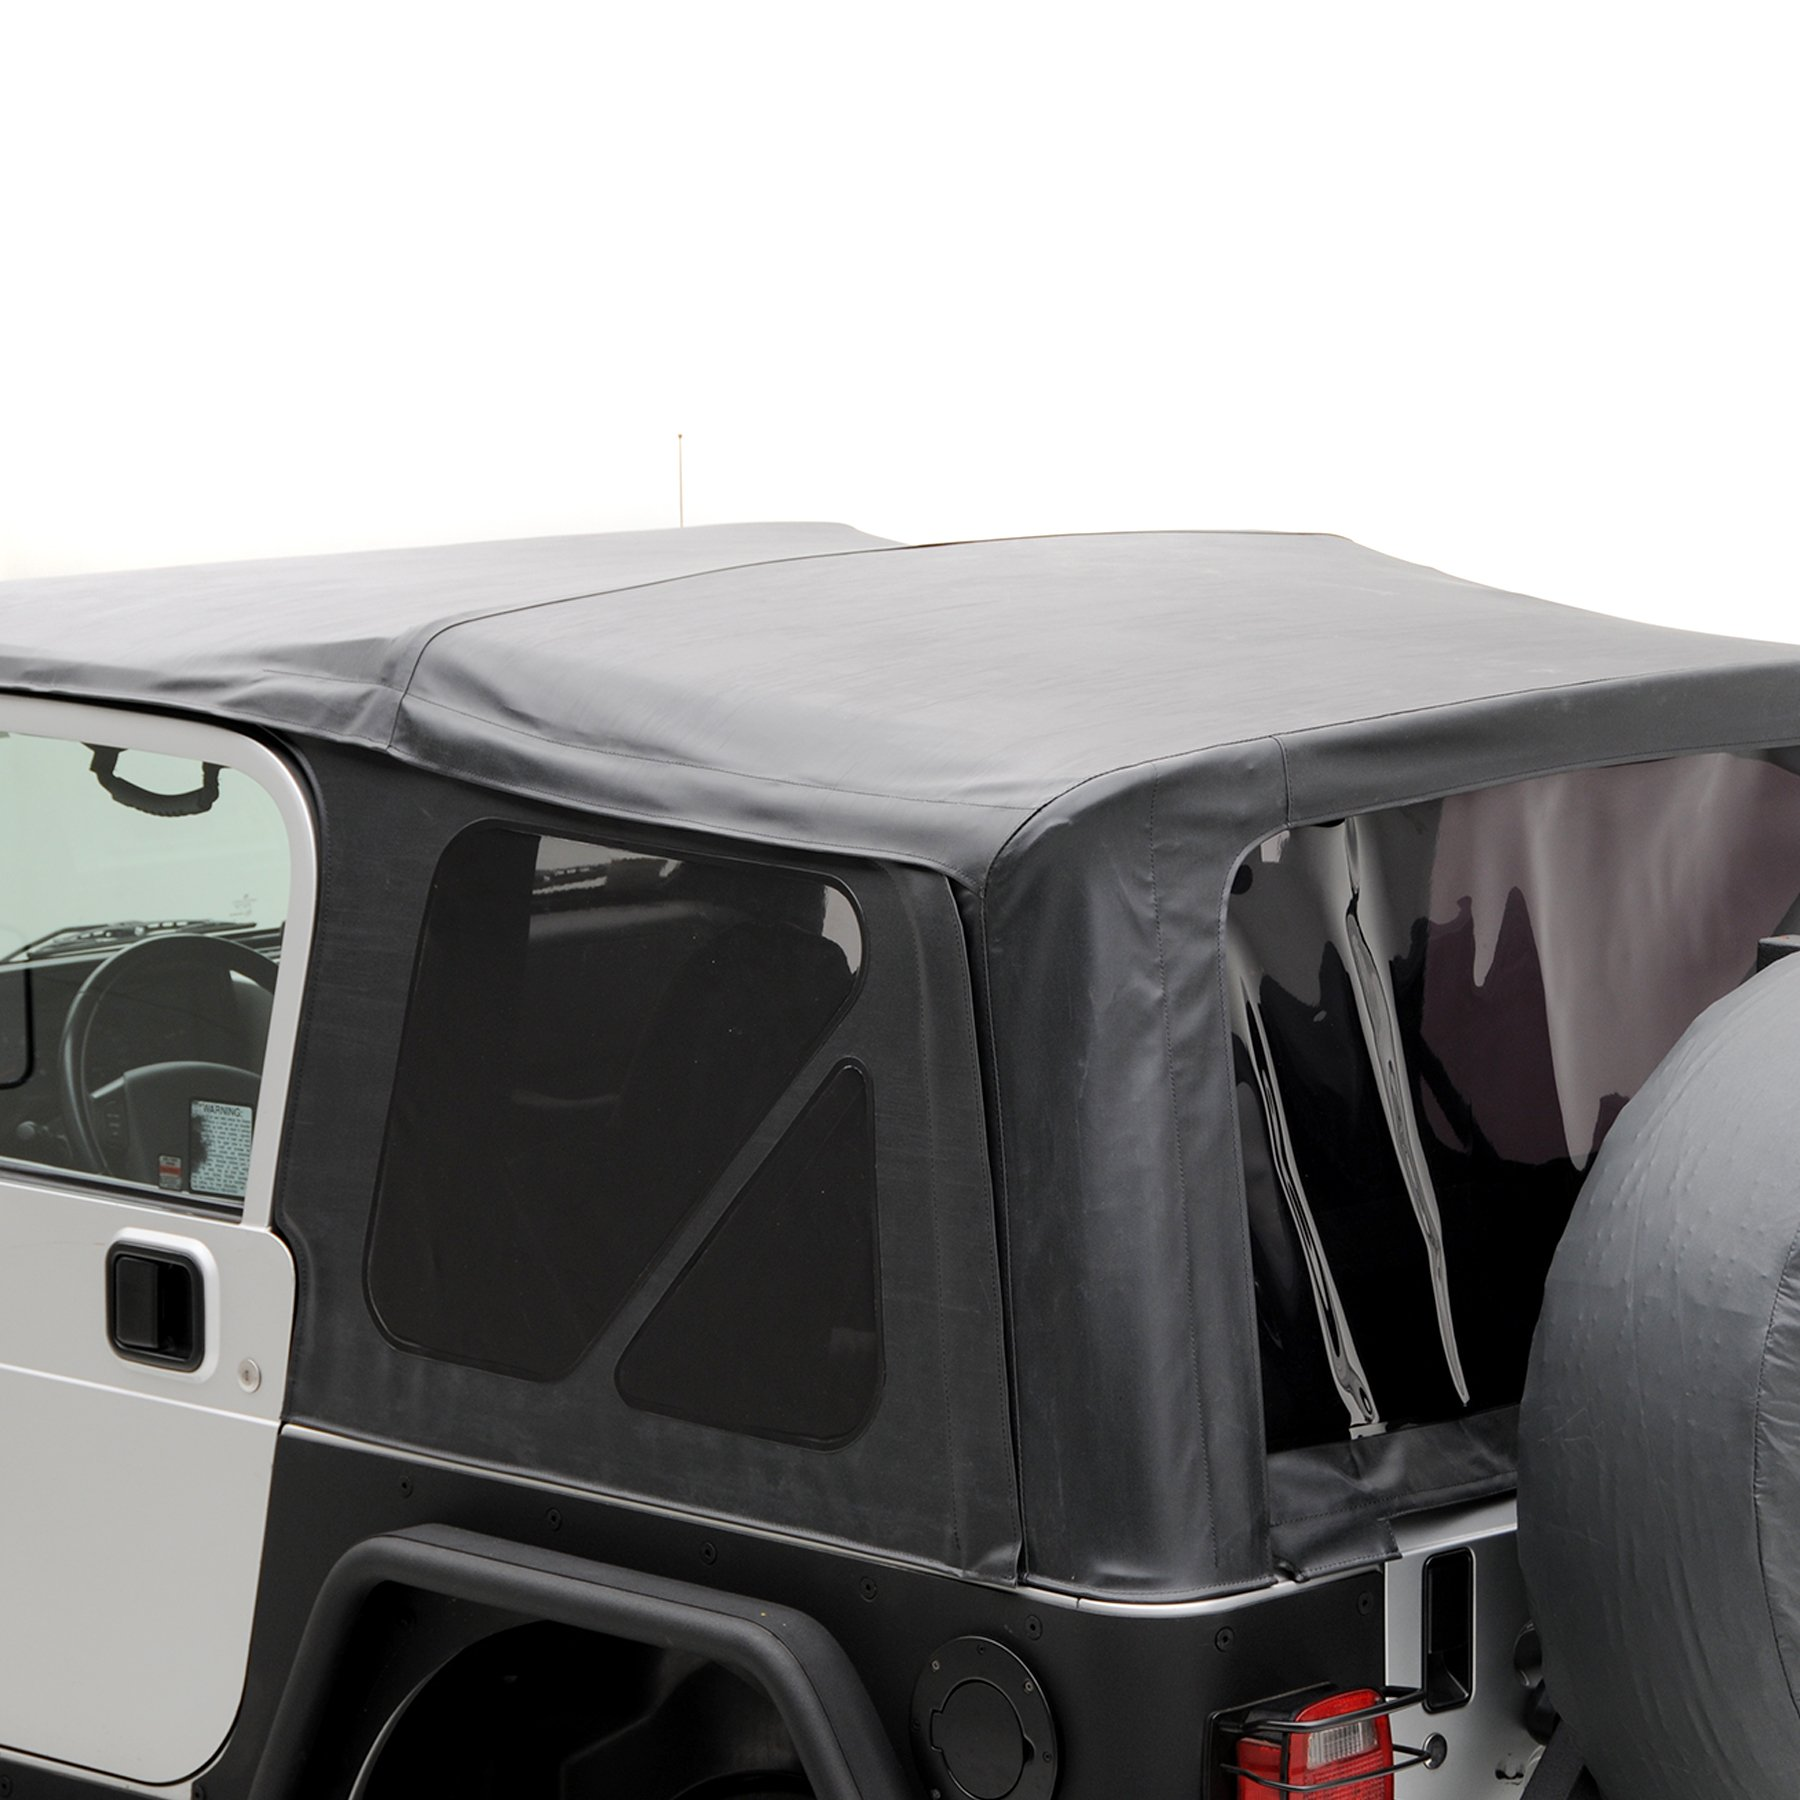 Smittybilt 9970235 Black Diamond OE Style Replacement Top with Tinted Window for Jeep Wrangler by Smittybilt